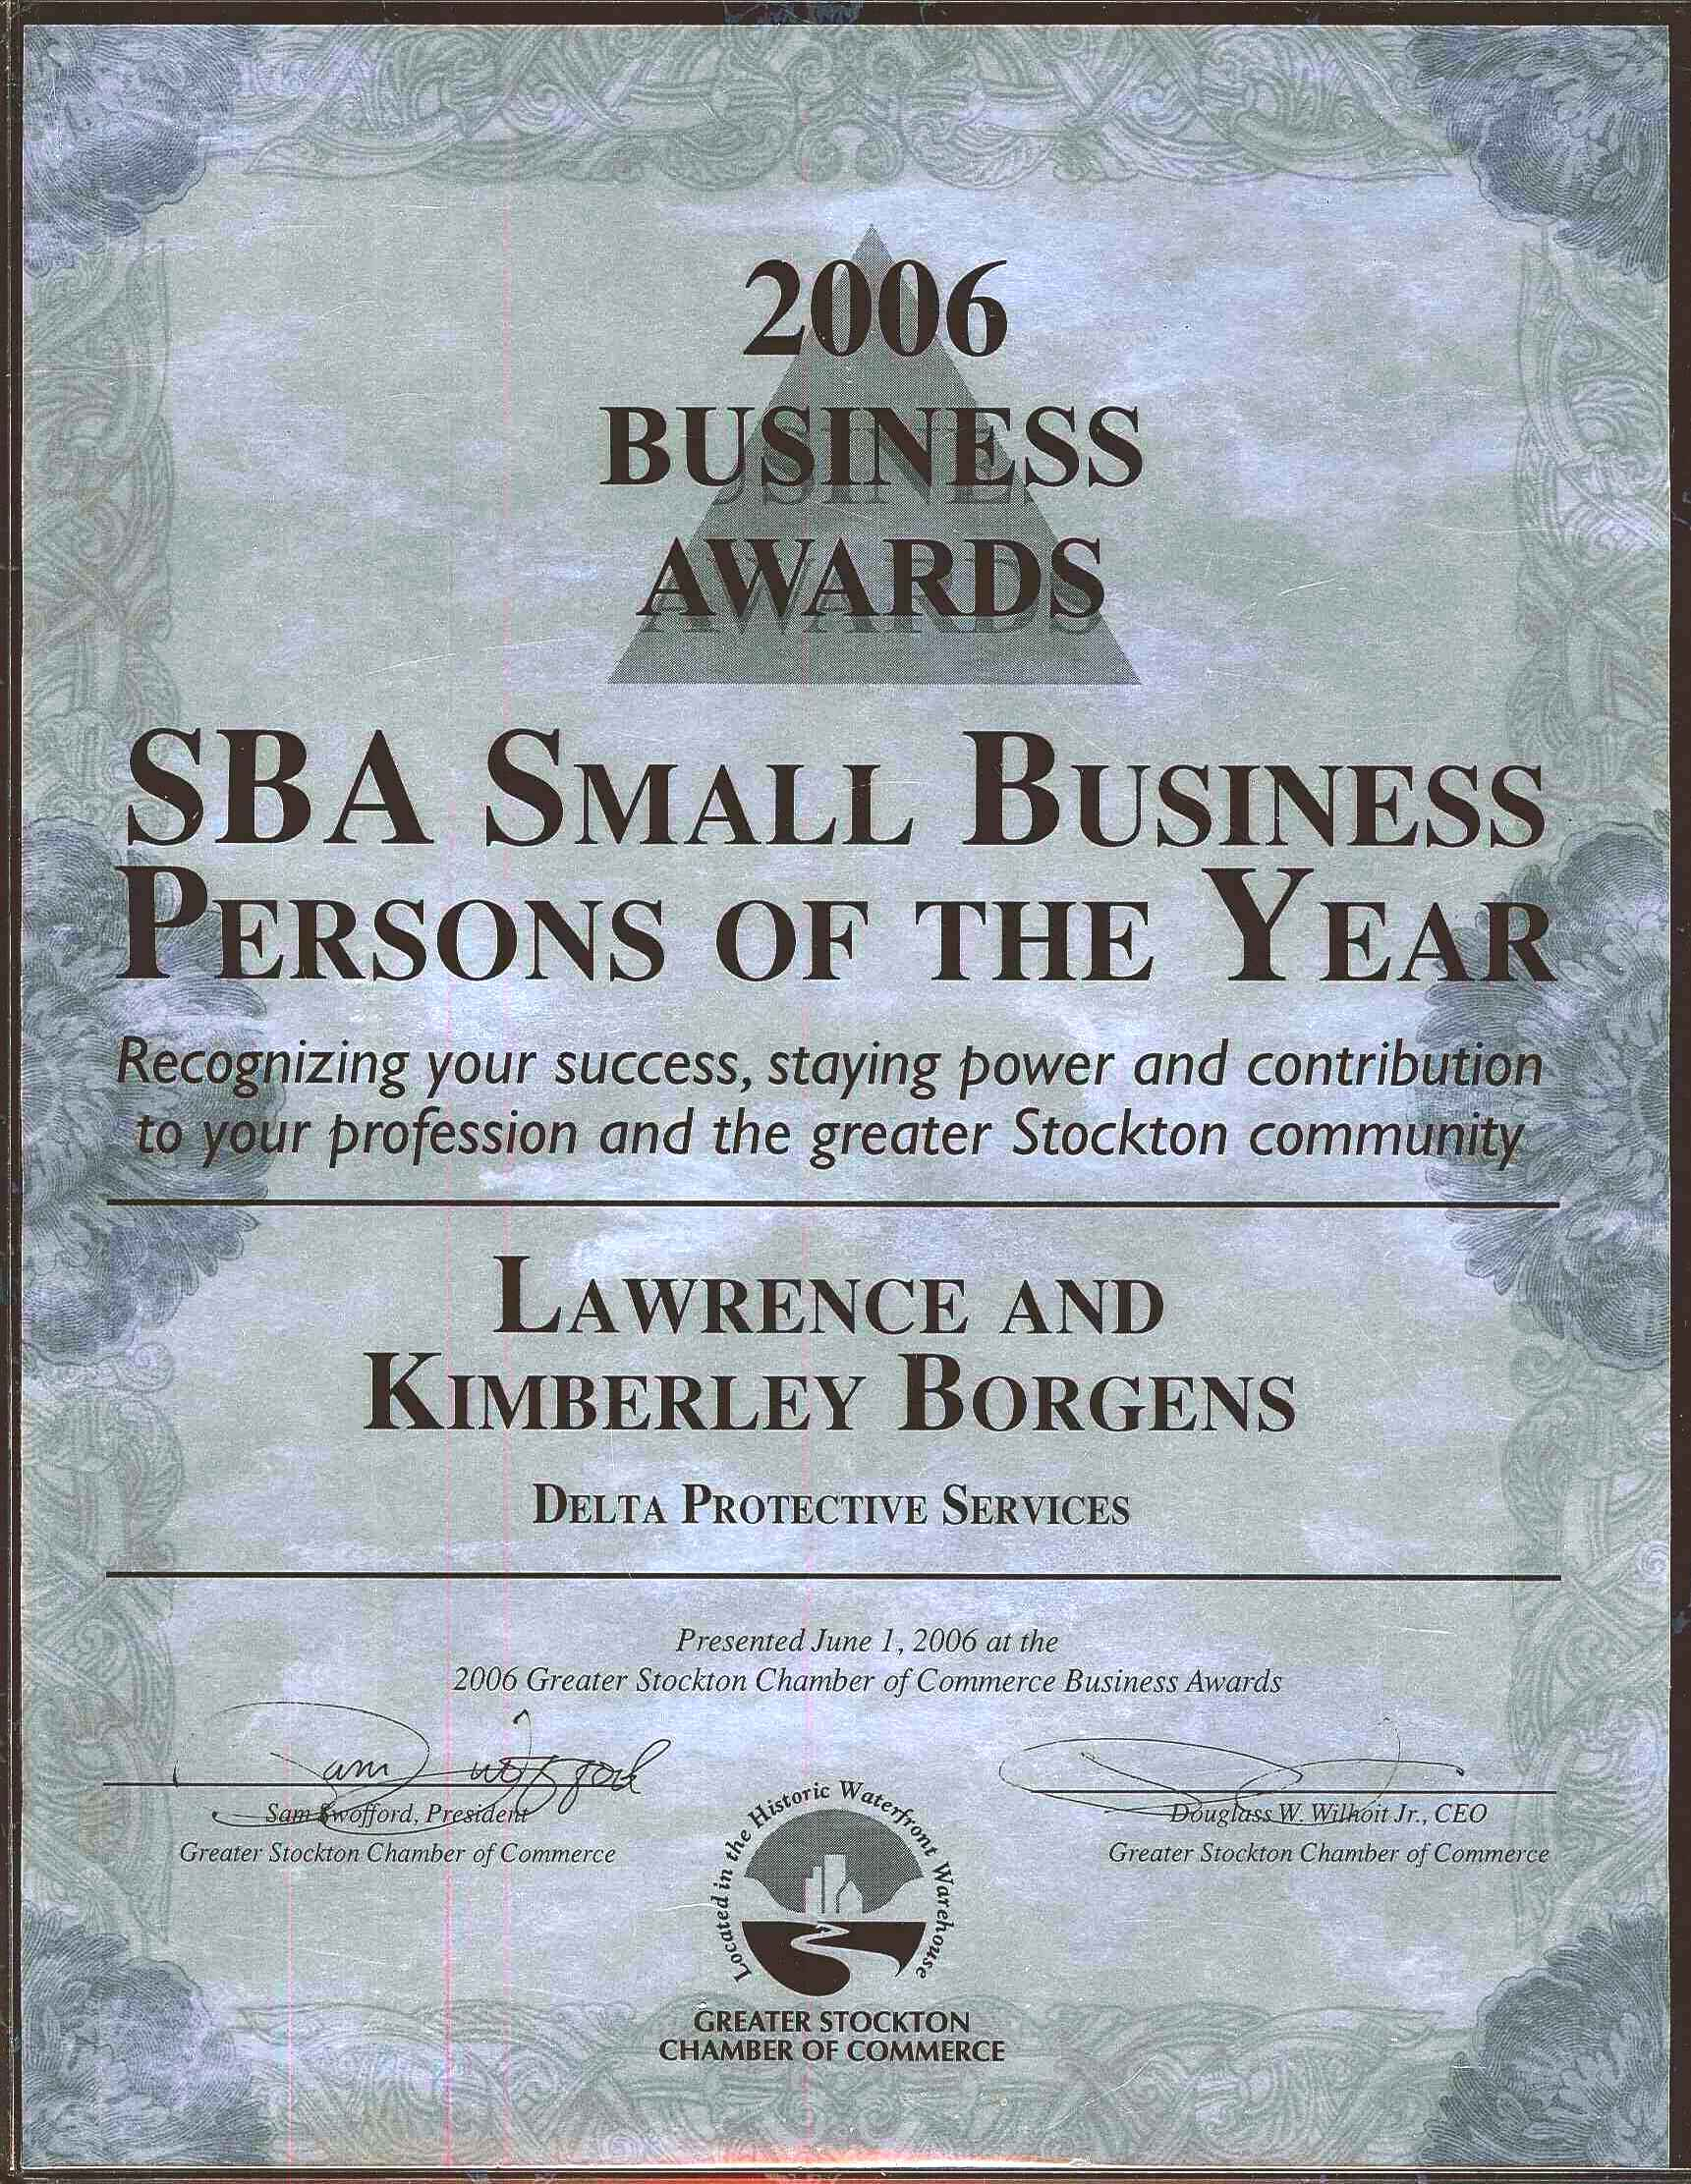 Business Persons of the Year - Kimberley and Lawrence Borgens